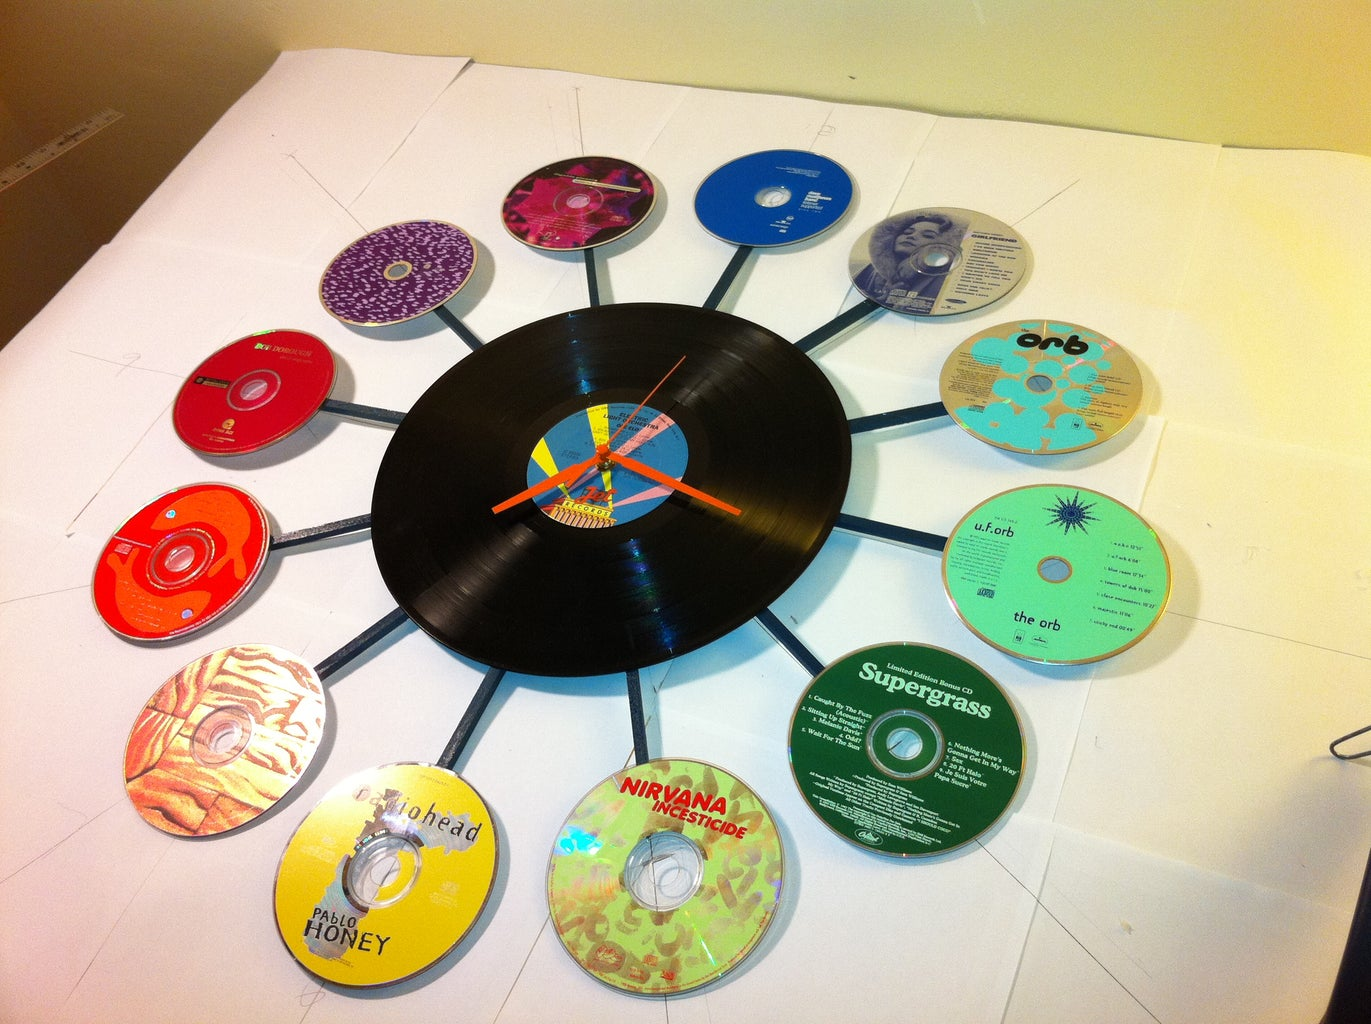 Step 6: Gluing the CDs in Place.